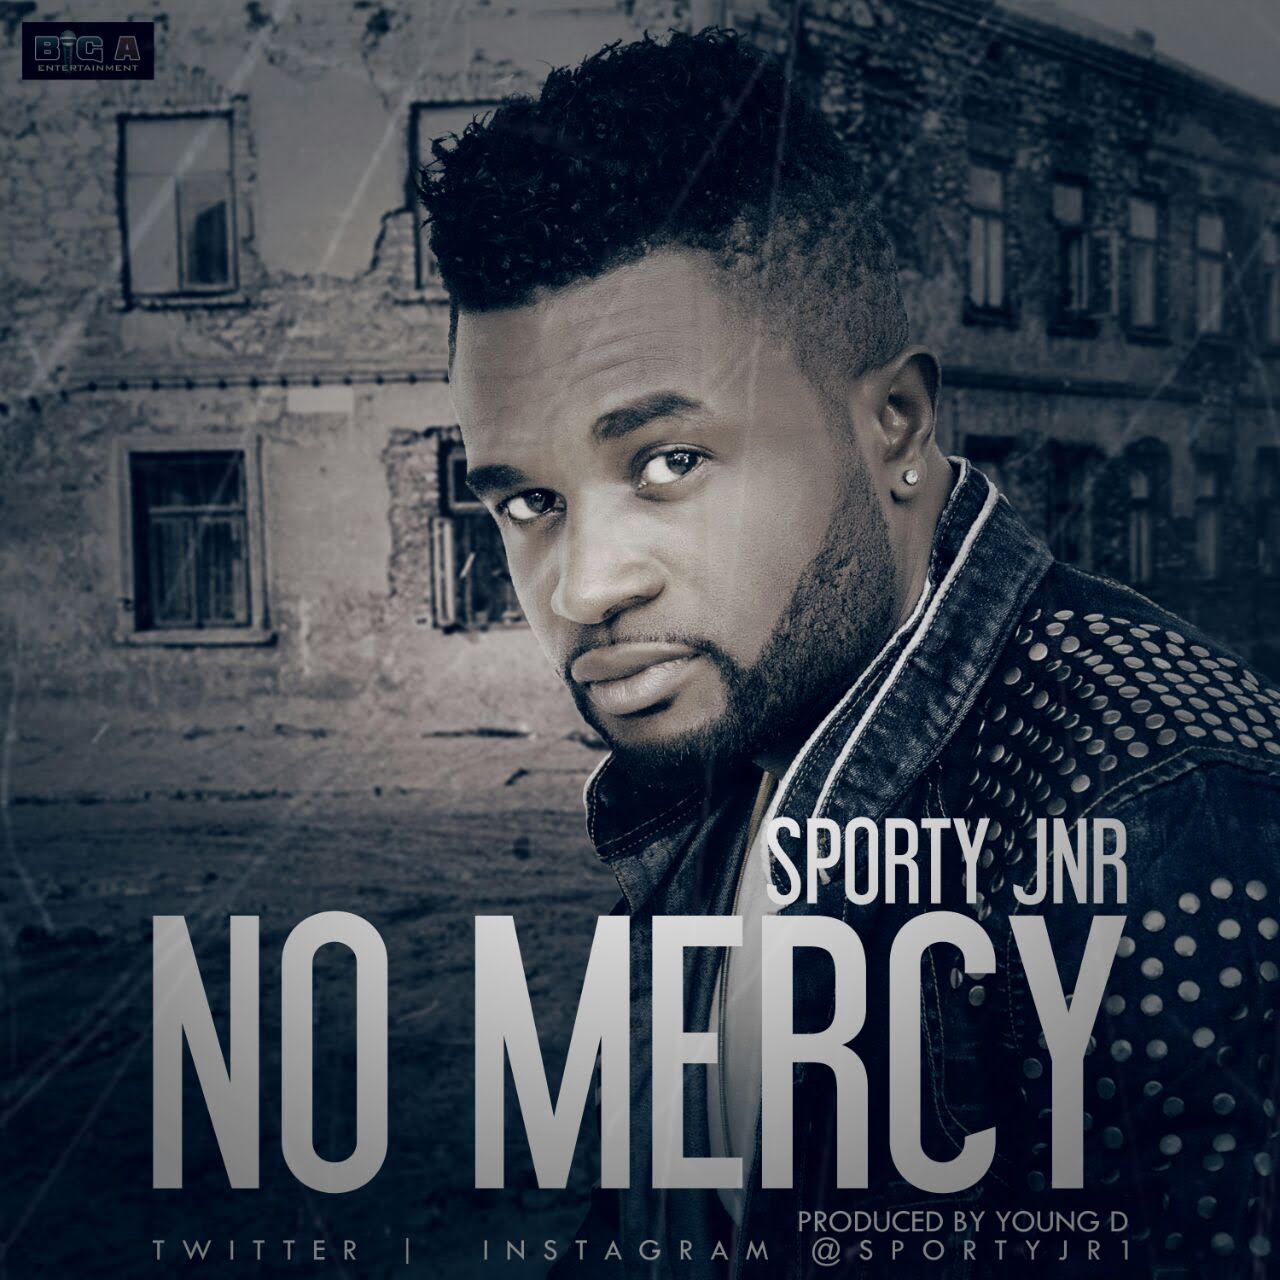 Sporty Jnr No Mercy ArtBig A Entertainment Presents: Sporty Jnr - No Mercy (prod. Young D)